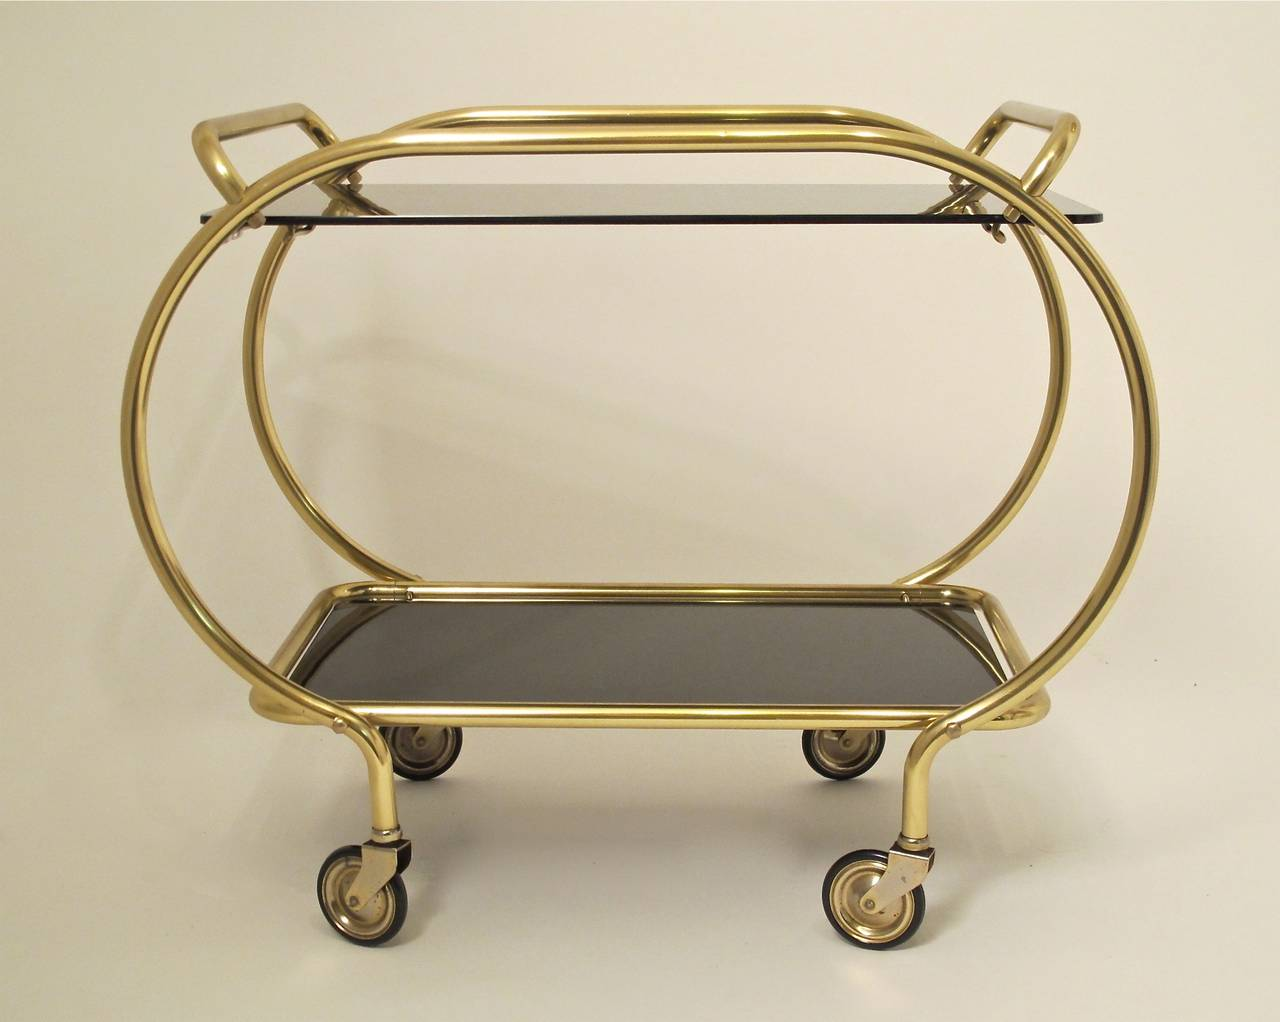 American Art Deco Style Bar Cart For Sale